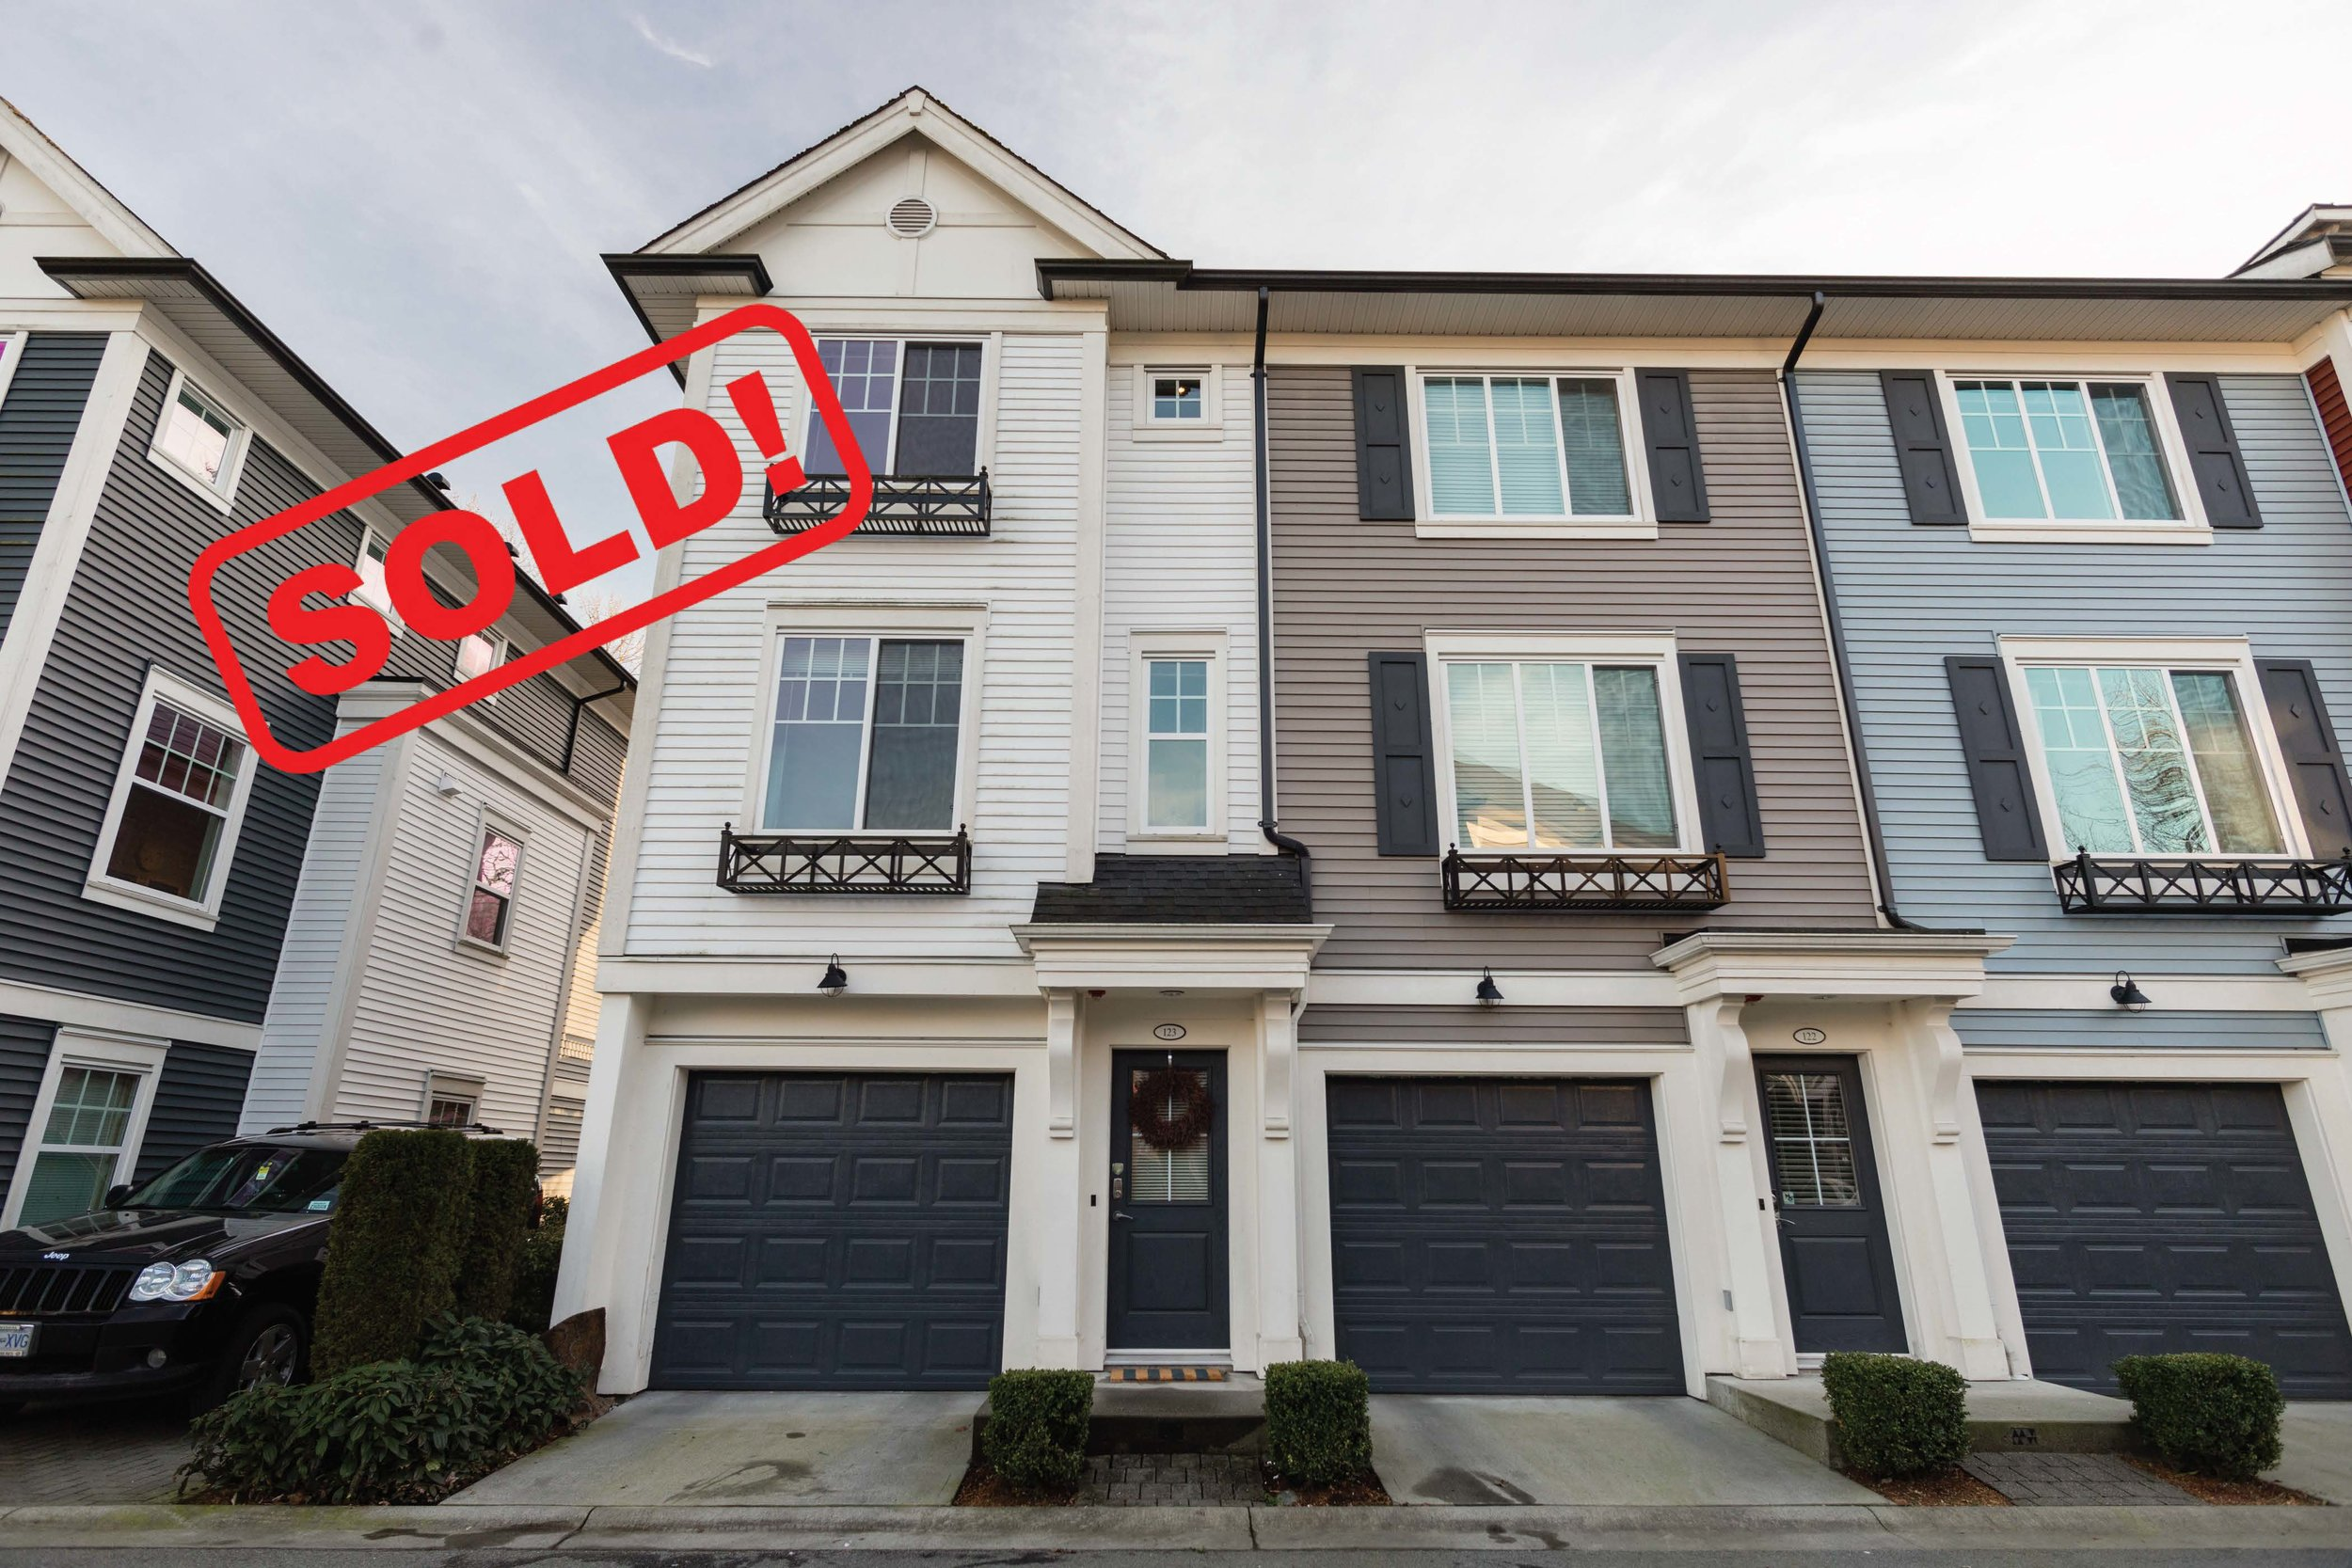 123-3010 RIVERBEND DRIVE     SOLD for: $680,000  2 BED | 2 BATH |1,241 SF